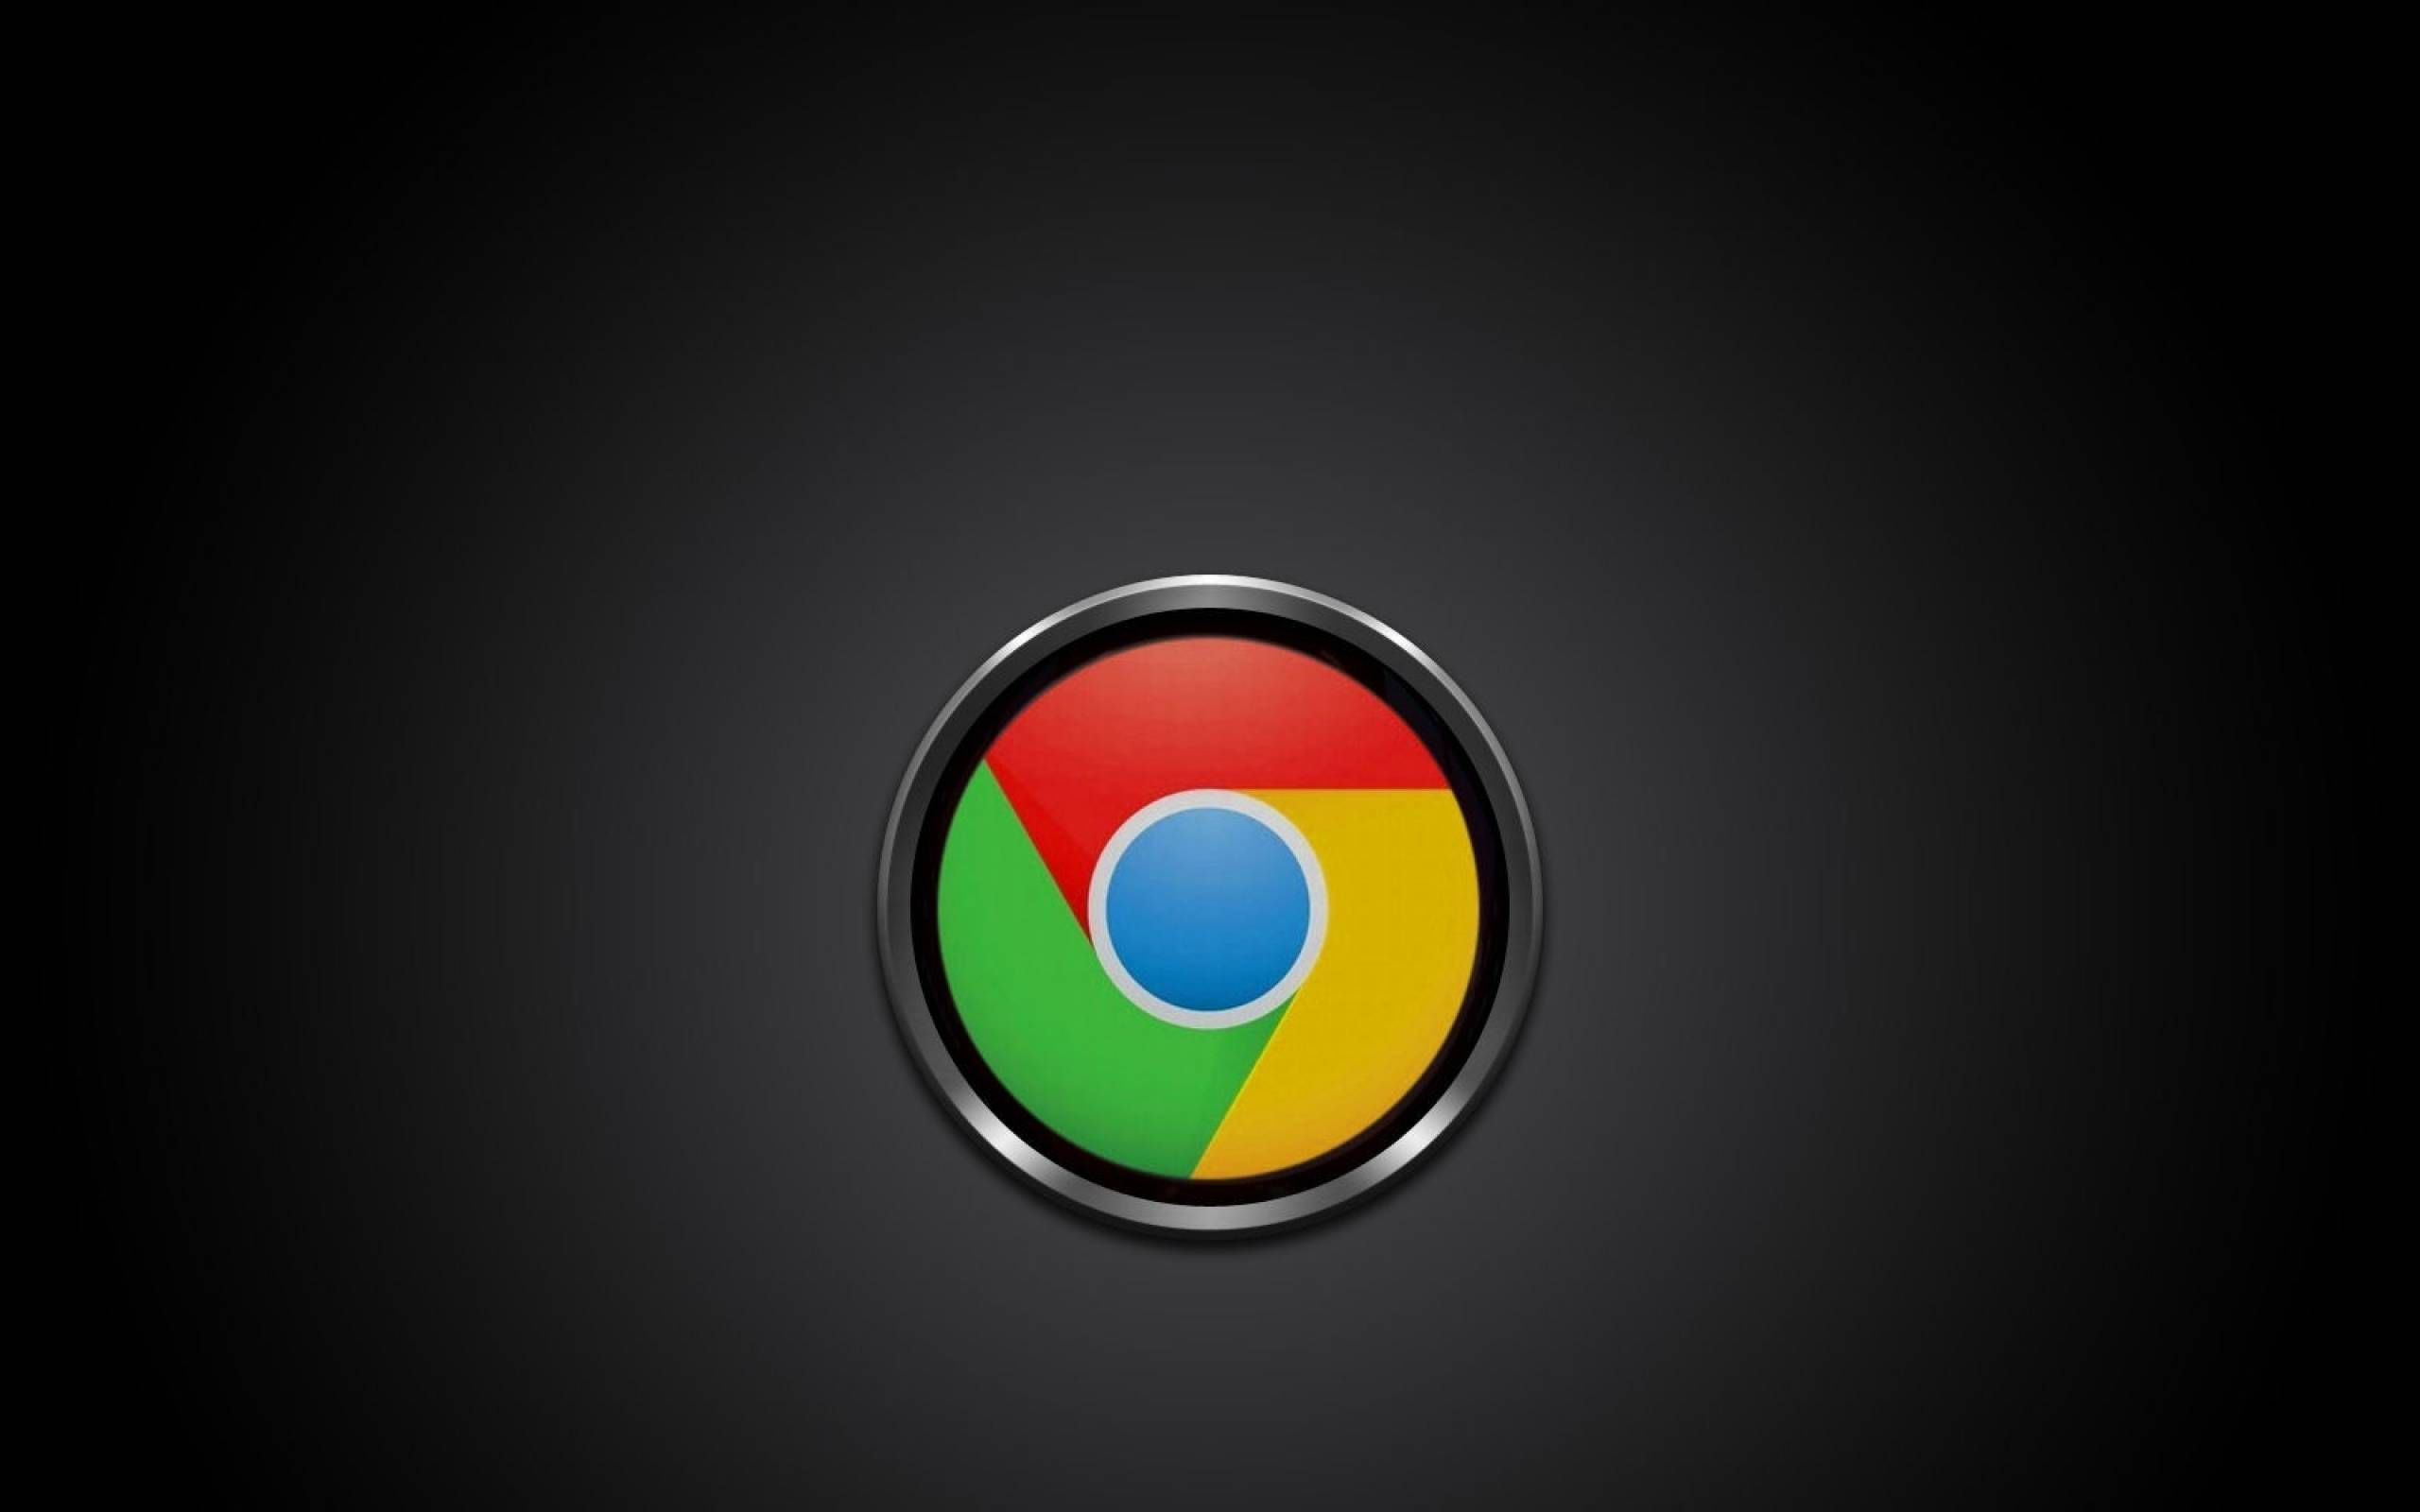 google chrome wallpaper high resolution amazing wallpapers